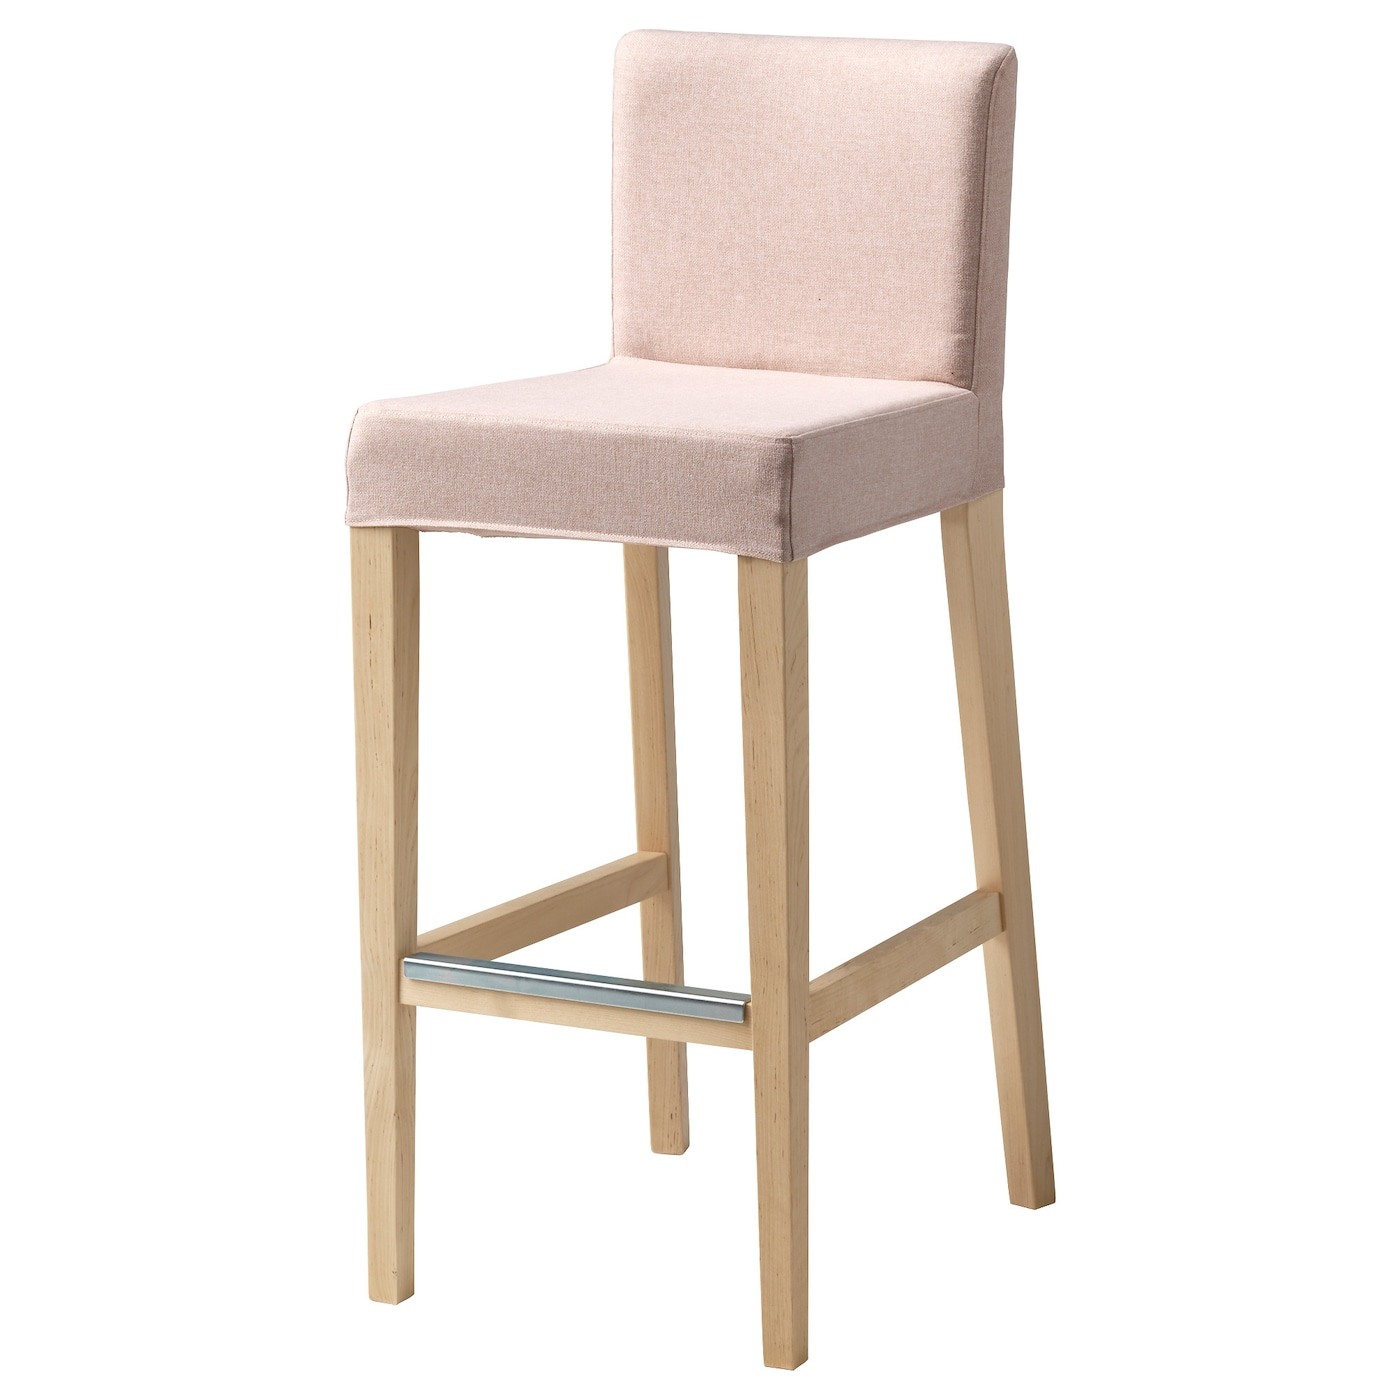 IKEA HENRIKSDAL bar stool with backrest Machine washable cover  easy to  keep clean Bar Seating   Caf  Seating   IKEA. Outdoor Bar Stools And Tables Uk. Home Design Ideas